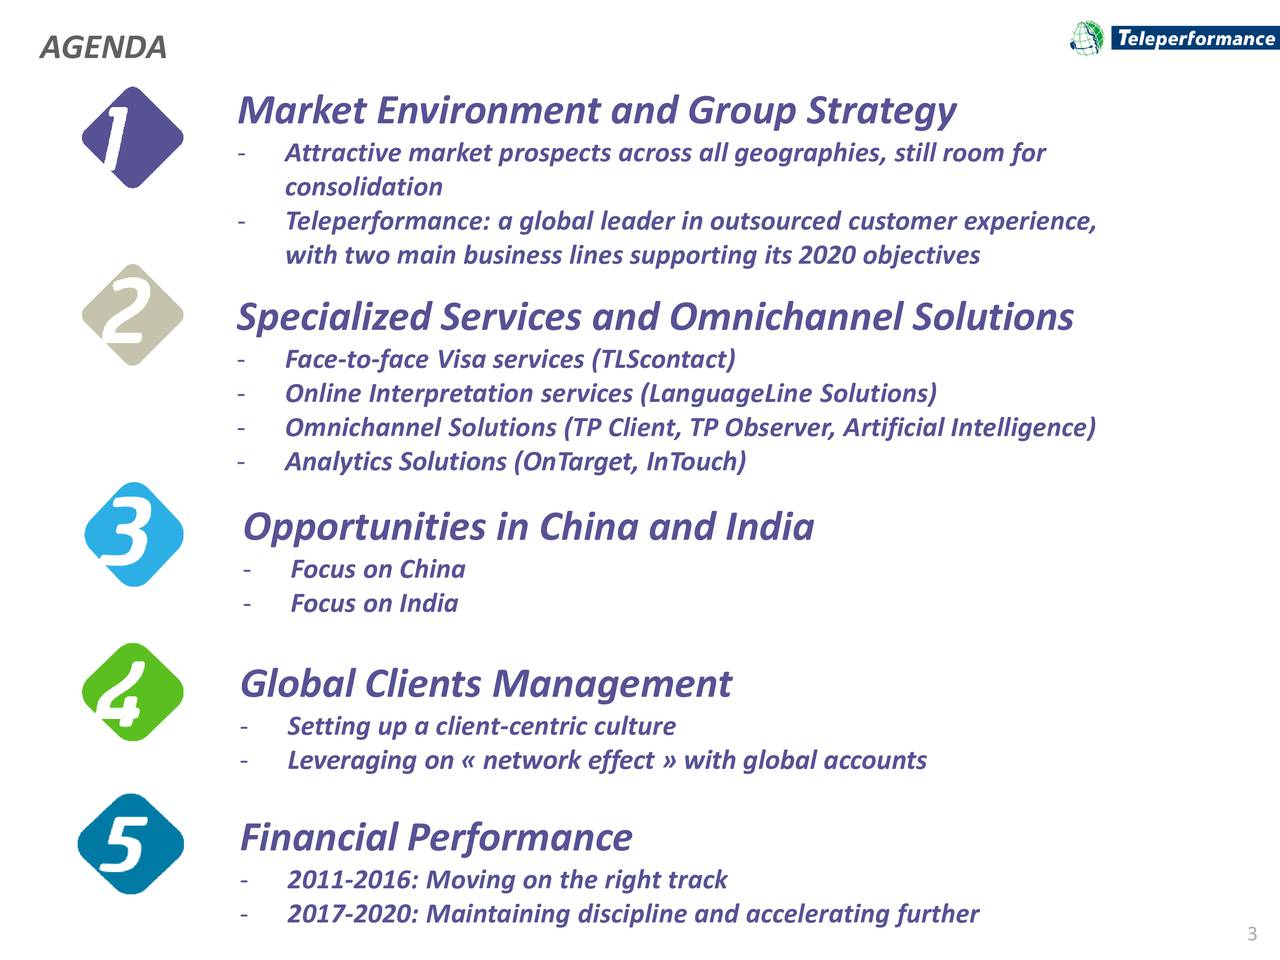 Market Environment and Group Strategy - Attractive market prospects across all geographies, still room for consolidation - Teleperformance: a global leader in outsourced customer experience, with two main business lines supporting its 2020 objectives Specialized Services and Omnichannel Solutions - Face-to-face Visa services (TLScontact) - Online Interpretation services (LanguageLine Solutions) - Omnichannel Solutions (TP Client, TP Observer, Artificial Intelligence) - Analytics Solutions (OnTarget, InTouch) Opportunities in China and India - Focus on China - Focus on India Global Clients Management - Setting up a client-centric culture - Leveraging on  network effect  with global accounts Financial Performance - 2011-2016: Moving on the right track - 2017-2020: Maintaining discipline and accelerating further 3